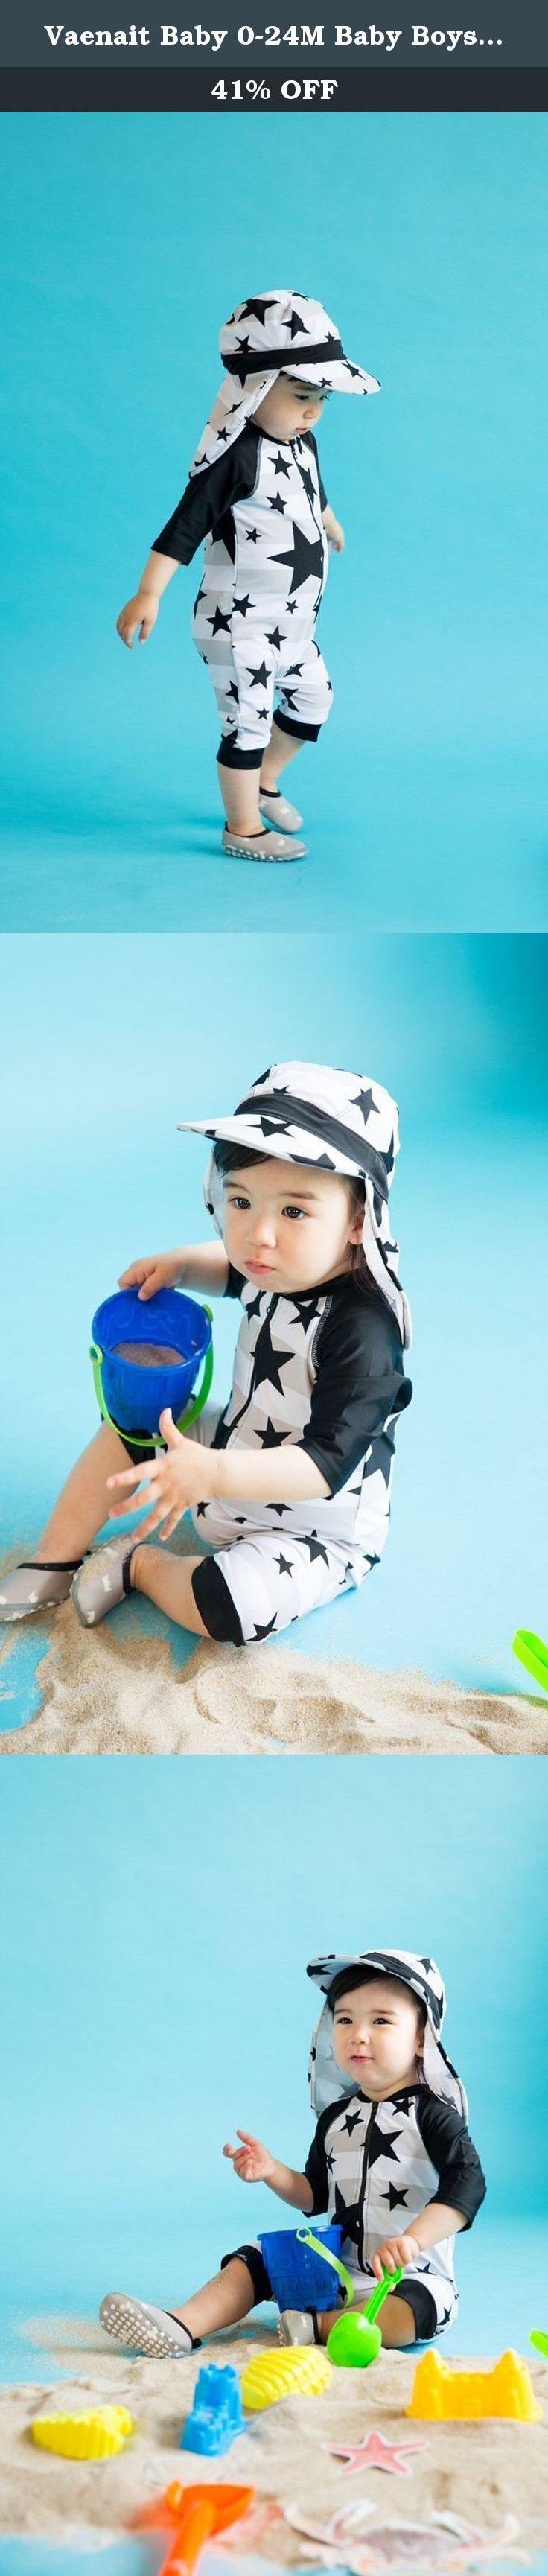 Vaenait Baby 0-24M Baby Boys Rashguard Swimwear with Swimhat 2pcs With Star Baby L. Vaenait Baby's swimwear is made with a high quality nylon/elastane materials. Offers reliable UV coverage in and out of the water. This rashguard swimsuit protect your babies from Sun. Vaenait Baby swimwear is good for active athlete as well as for the recreational swimmer. Each swimwear is enveloped in reusable zipper-locking plastic bag, good for GIFT. Wear most famous Vaenaitbaby's Clothes.